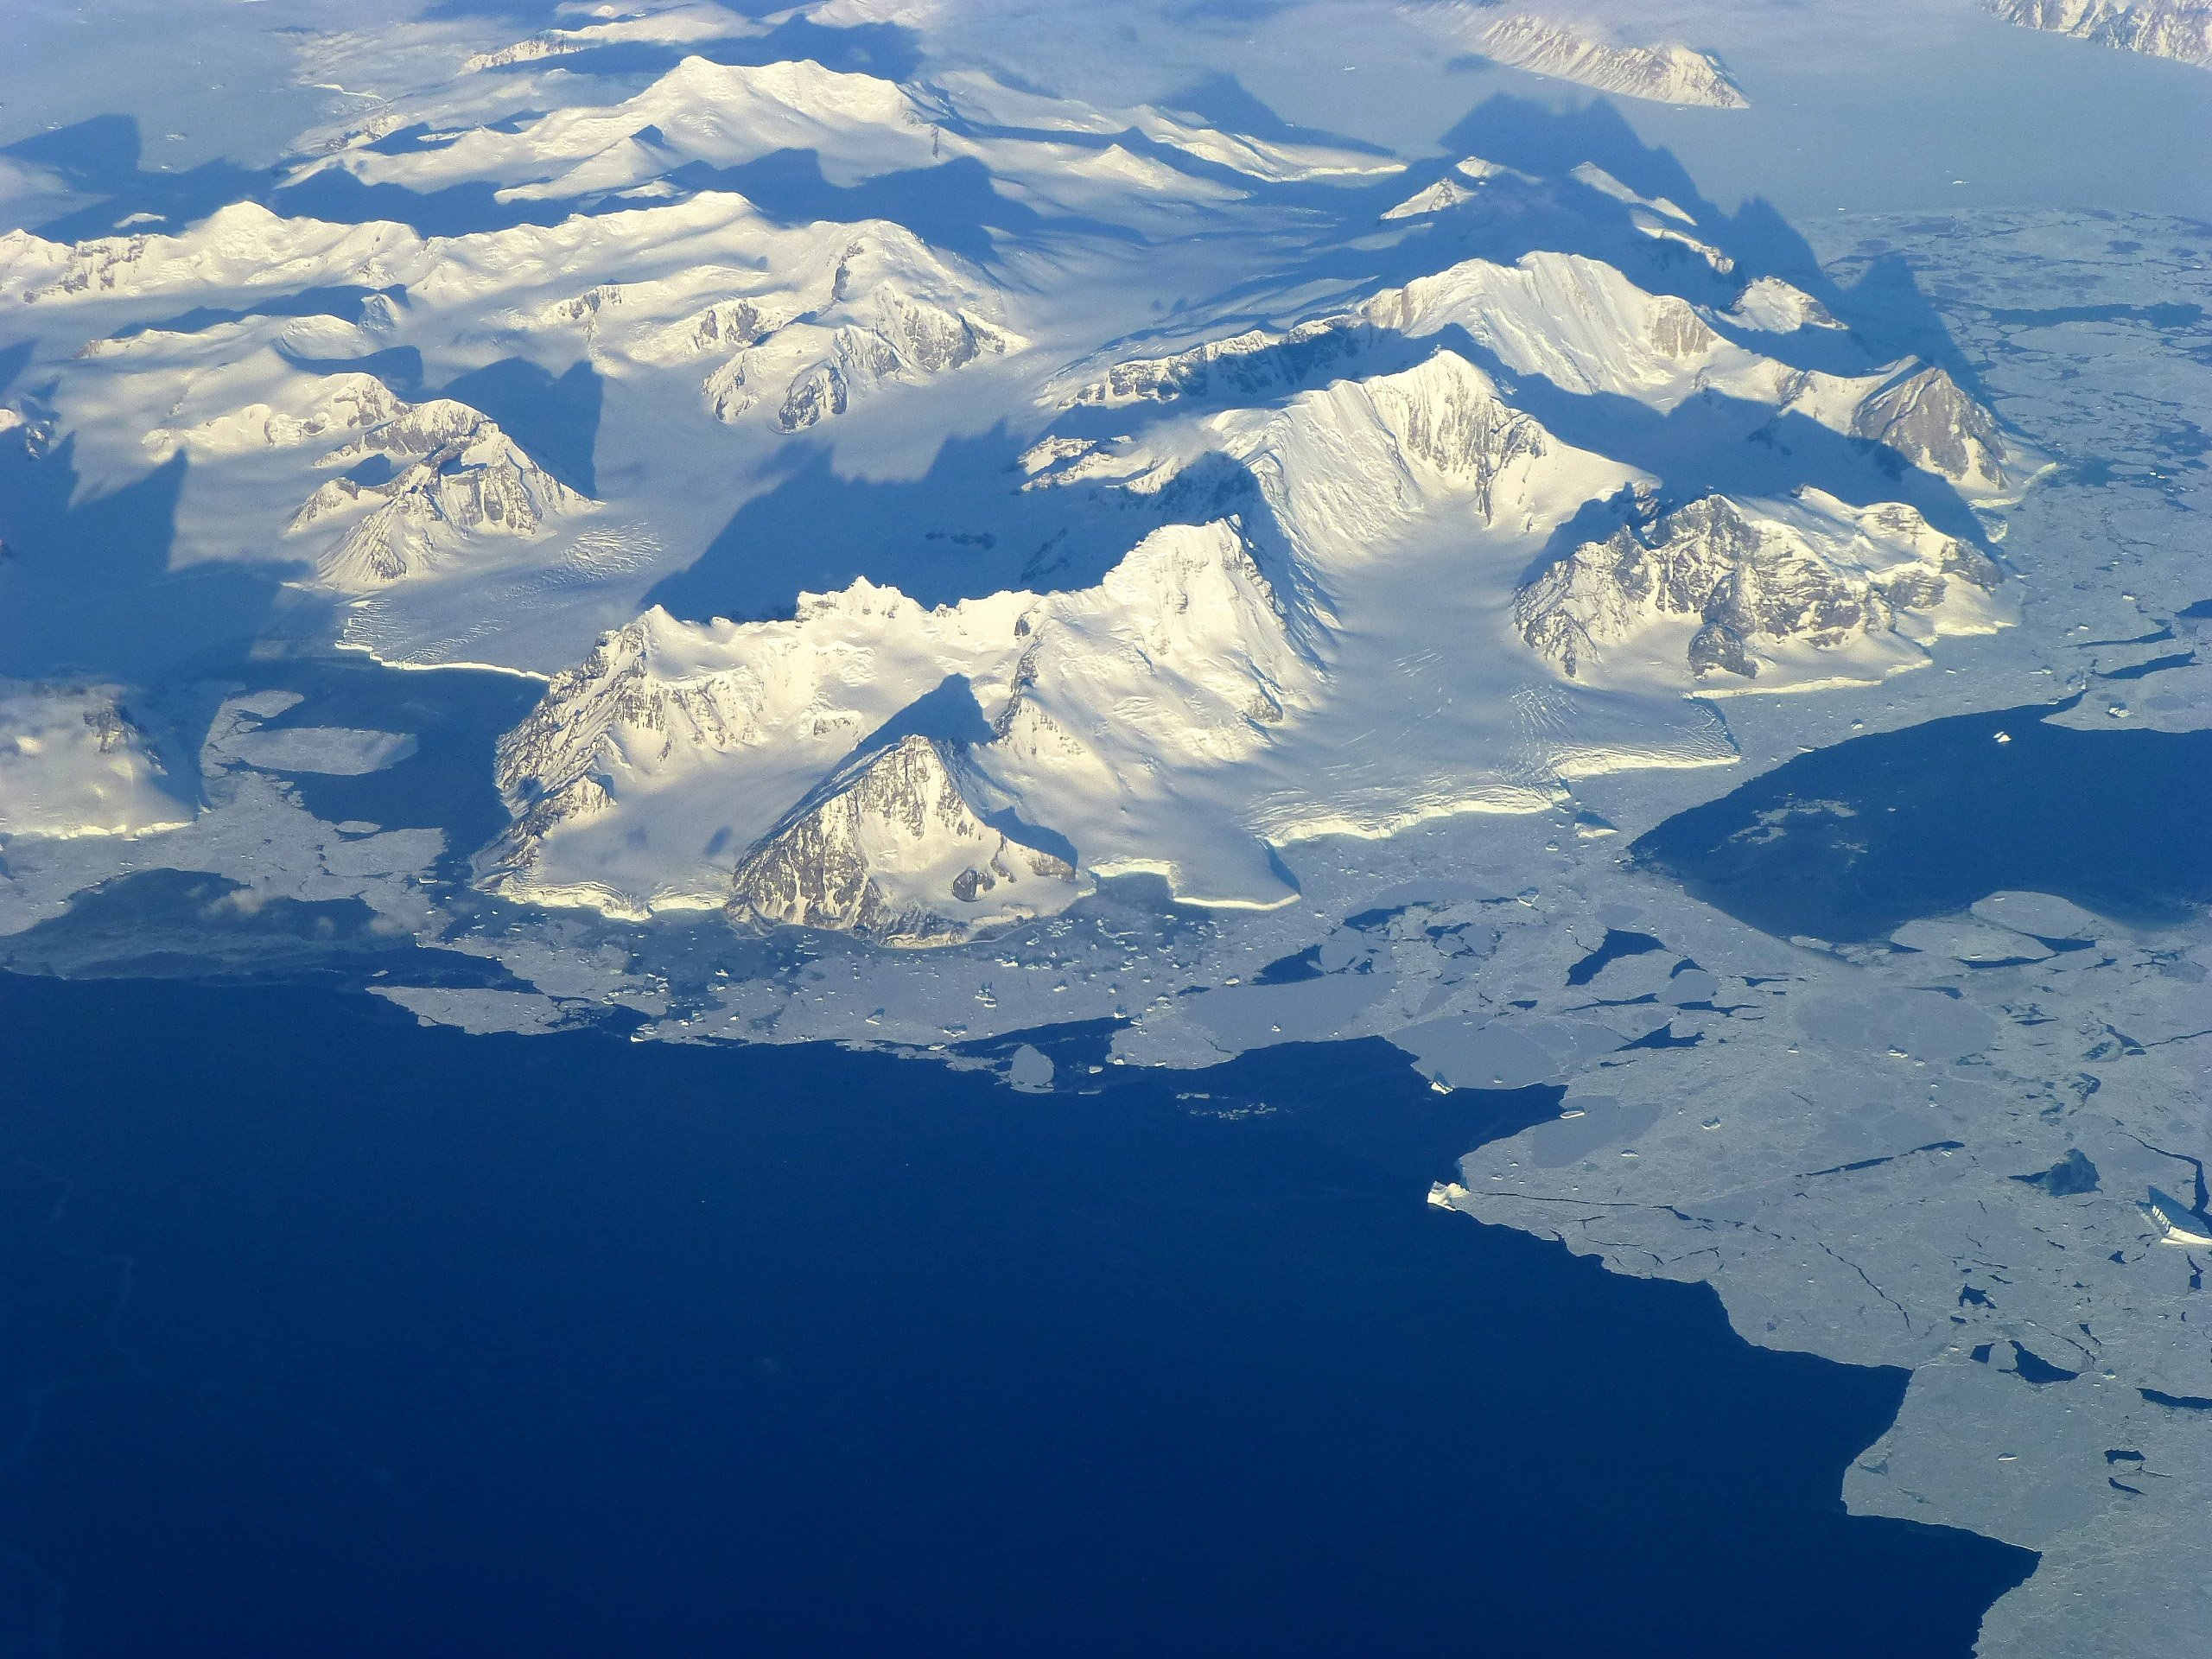 http://static1.businessinsider.com/image/56378313dd08956a658b4583-2560-1920/antarctic%20peninsula.jpg